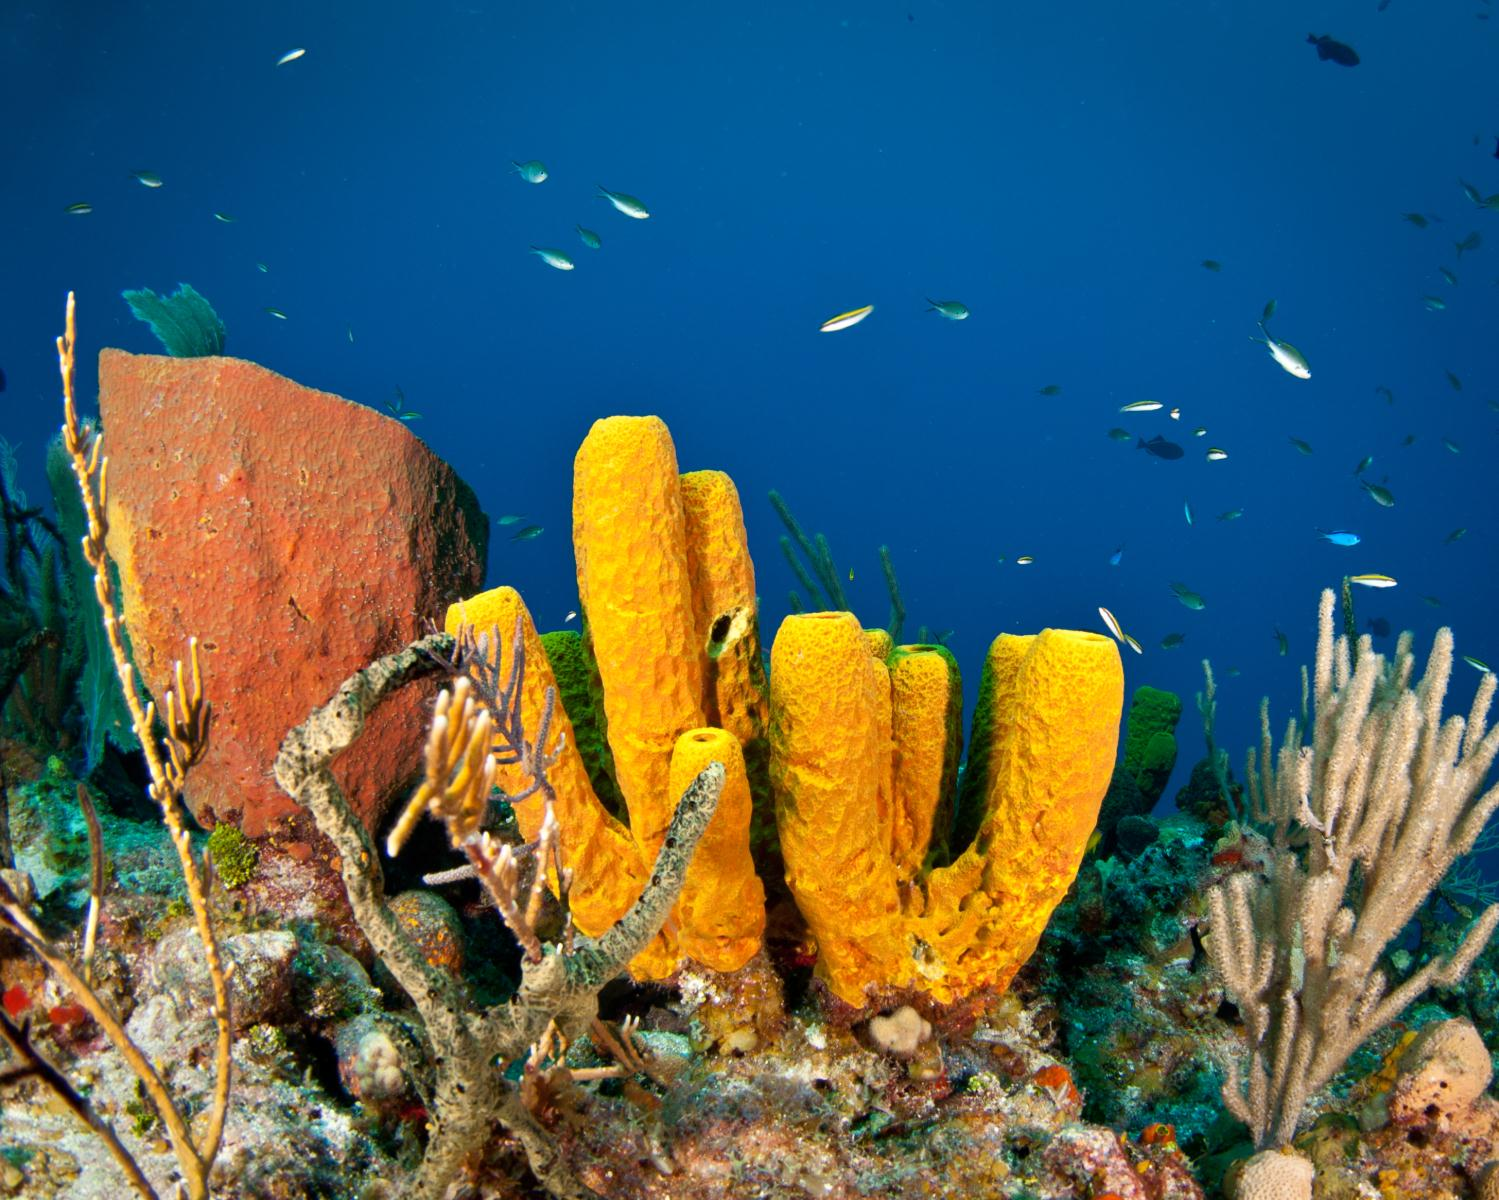 The Cayman Islands offer a Garden of Underwater Eden just offshore